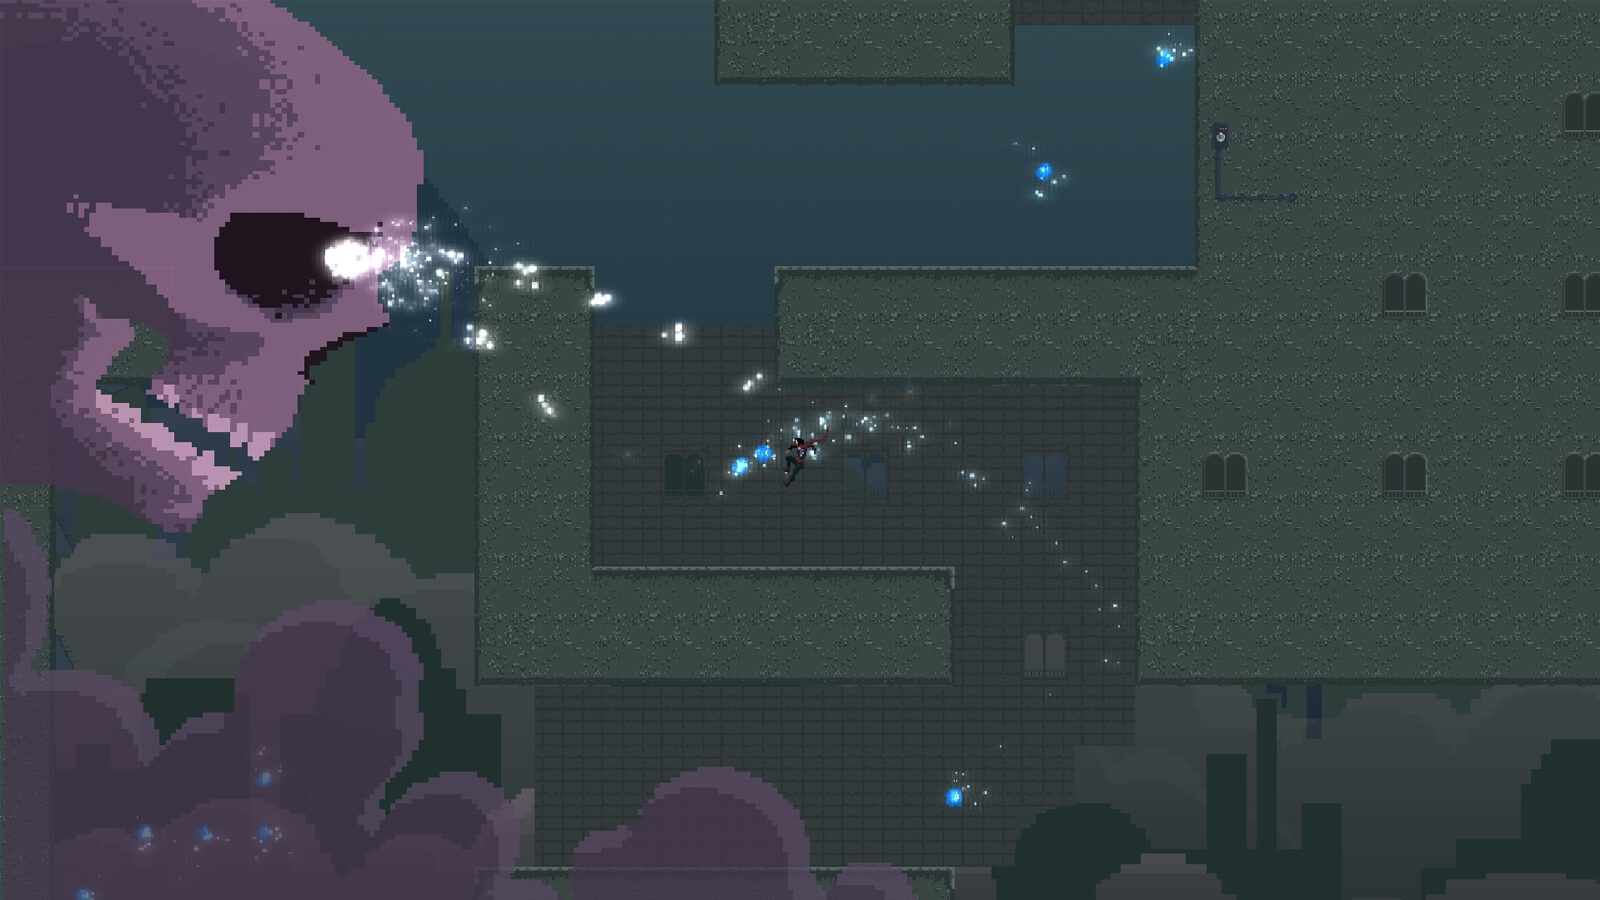 Polaris jumps through an opening in a city building, collecting a star as a skull approaches.